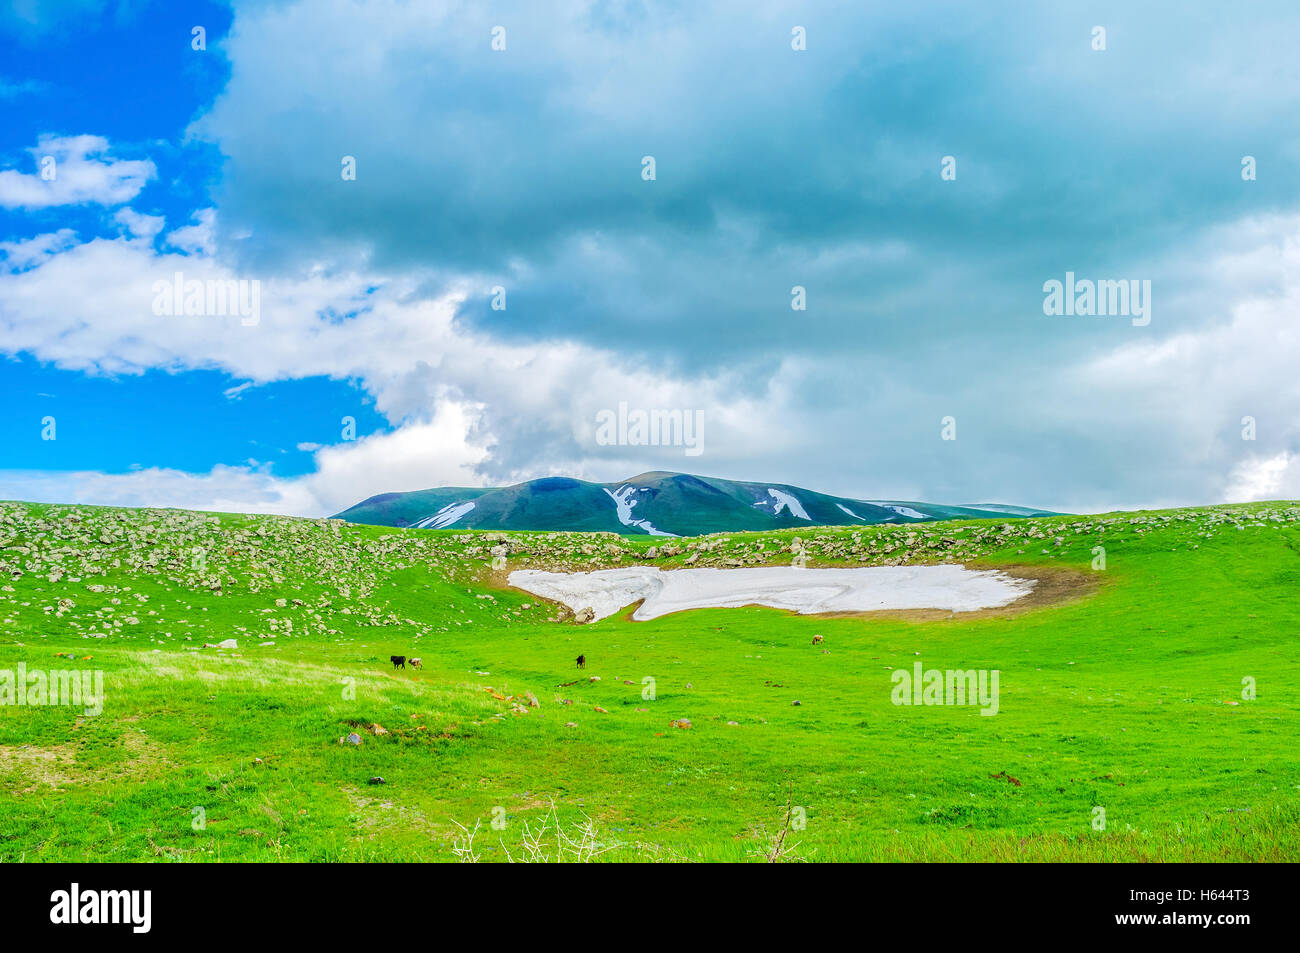 The dusty snowfield on the green meadow in highlands of Gegharkunik Province, Armenia. - Stock Image